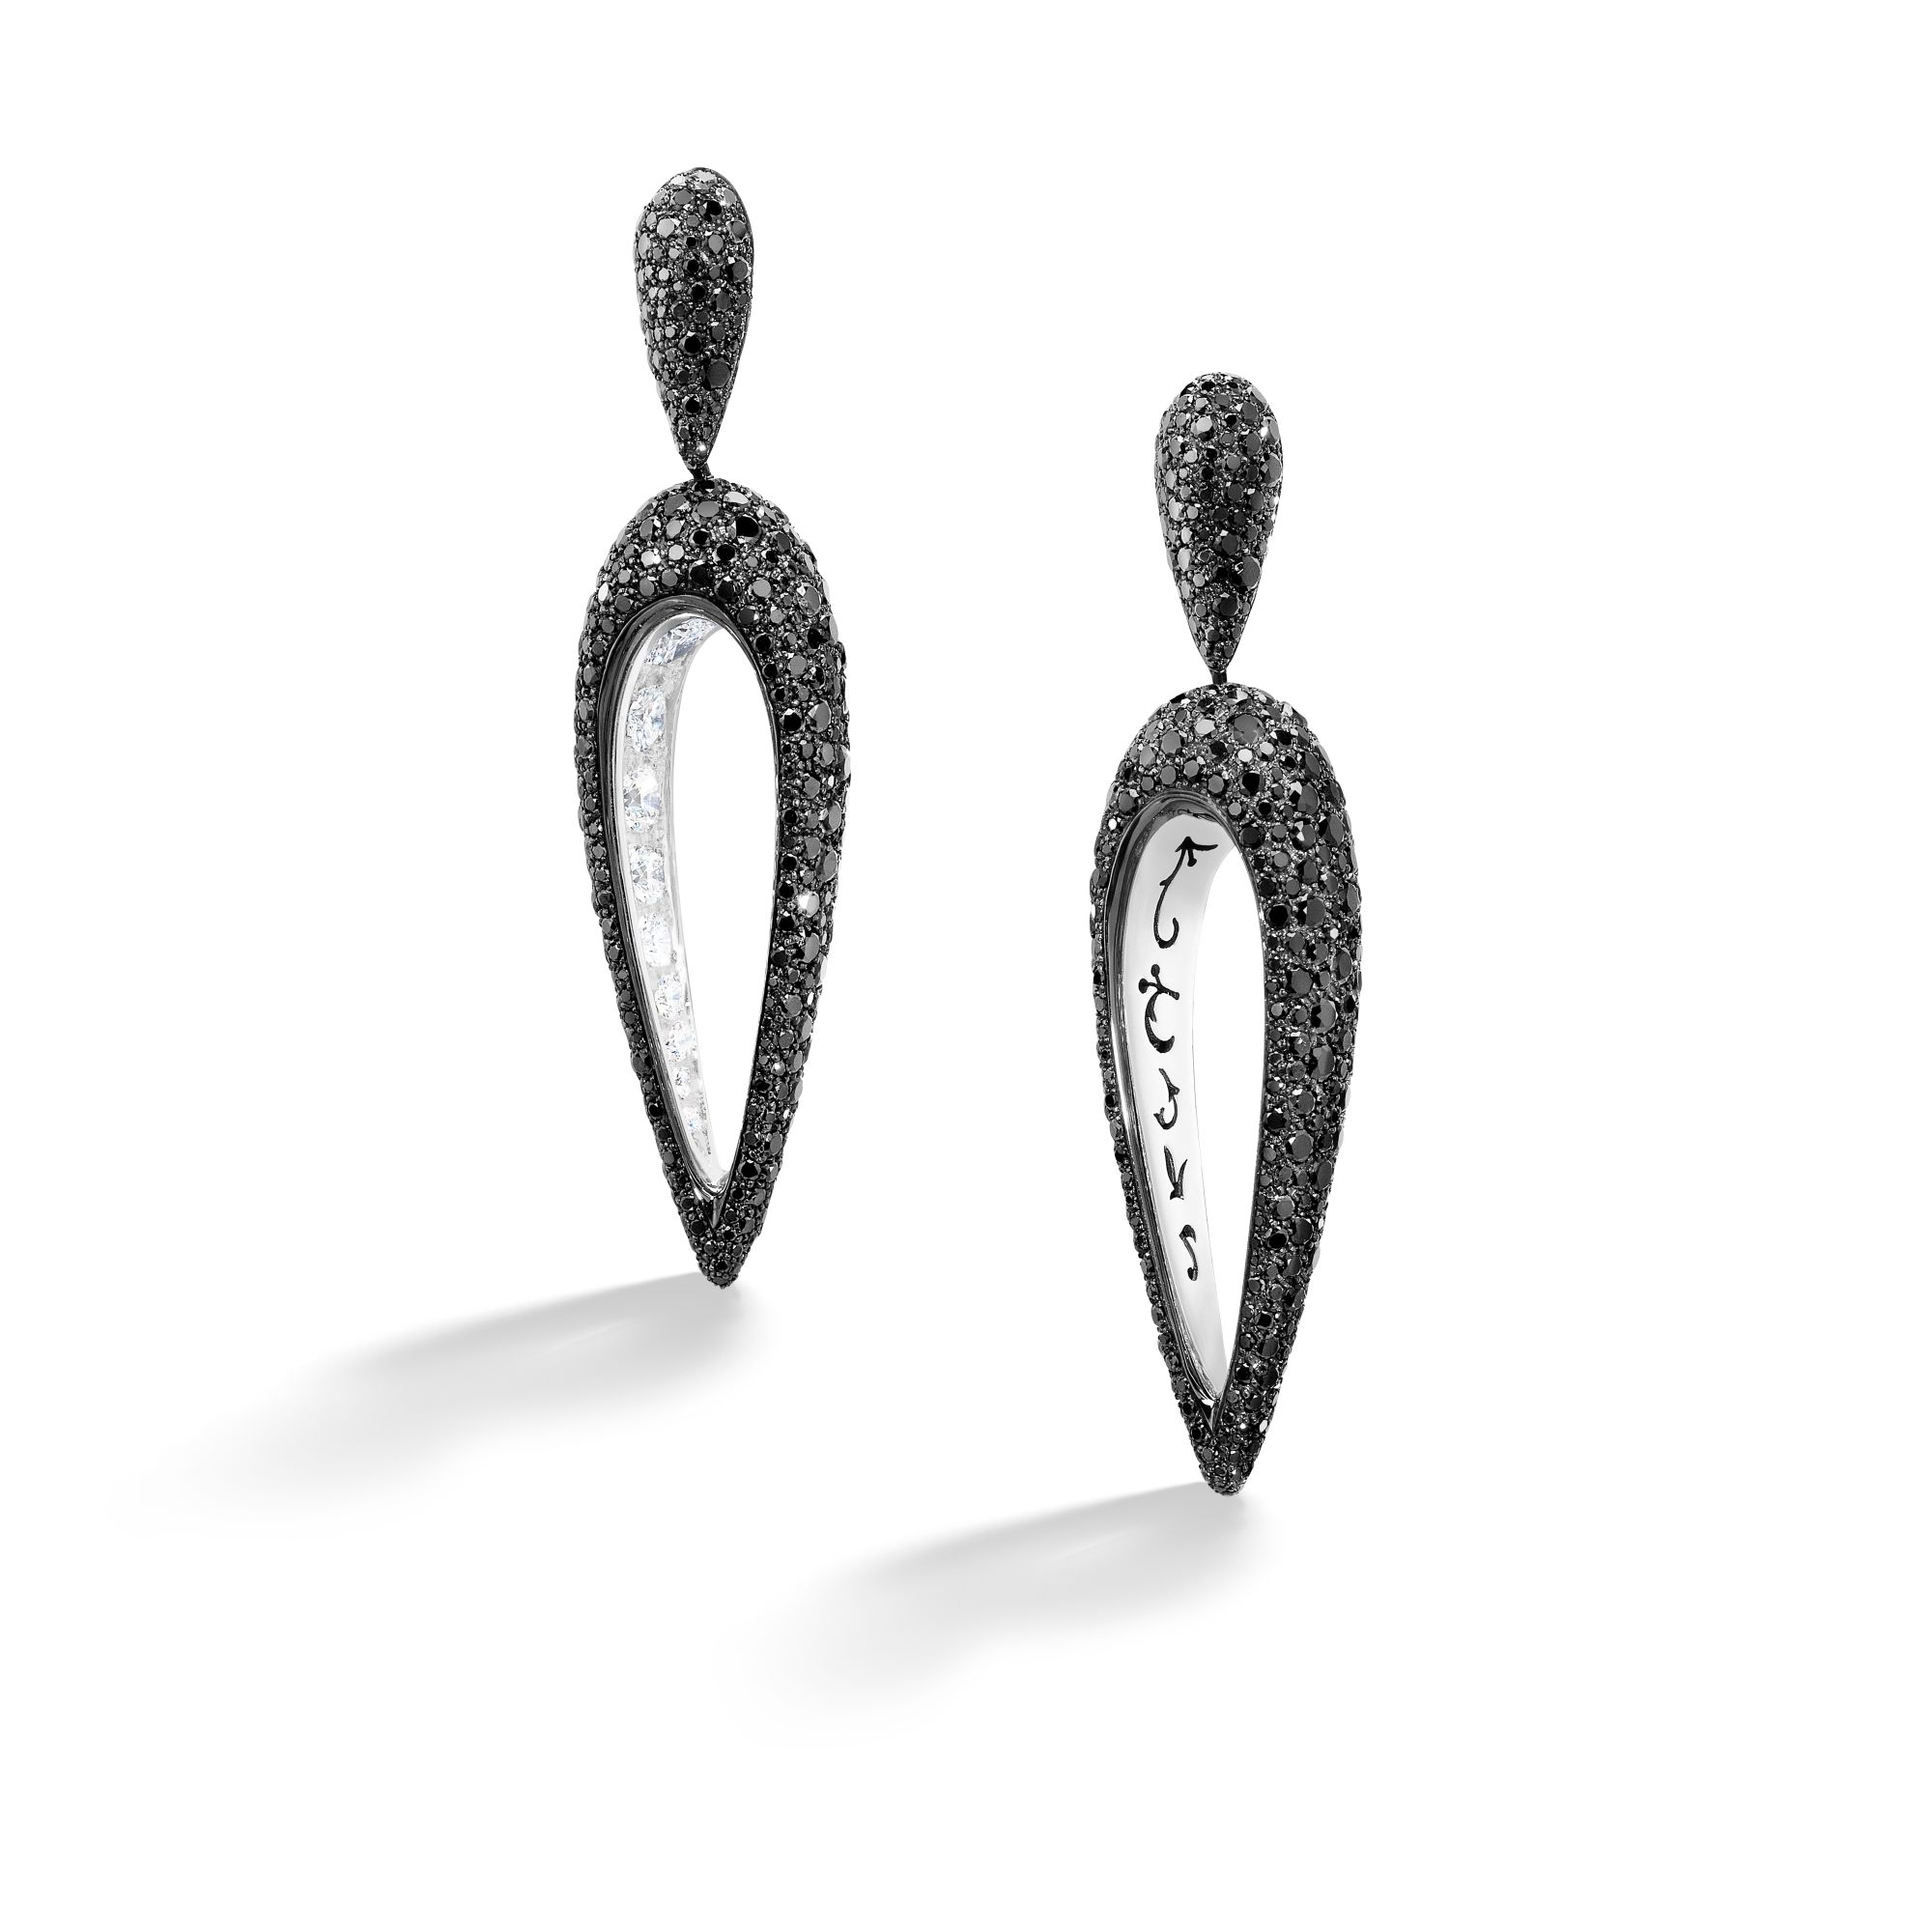 Lot 5 De Grisogono earings – Estimate: 40,000 - 60,000 € Courtesy of De Grisogono